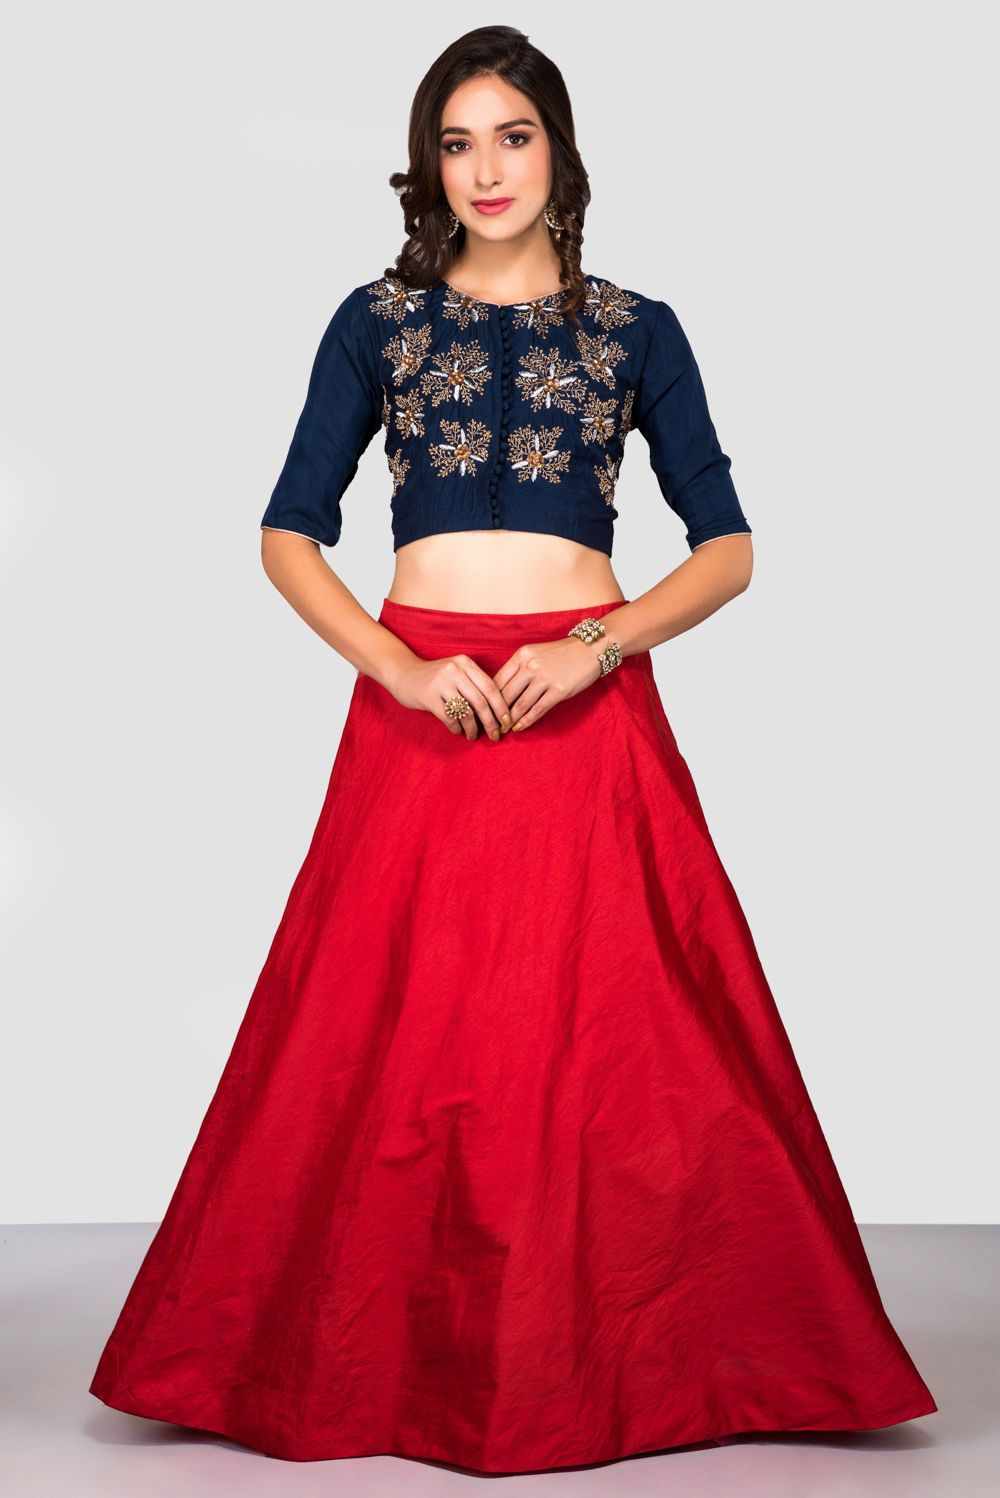 bba71ef7cd6ca Rent HOUSE OF OMBRE - Blue Embroidered Crop Top With Red Skirt